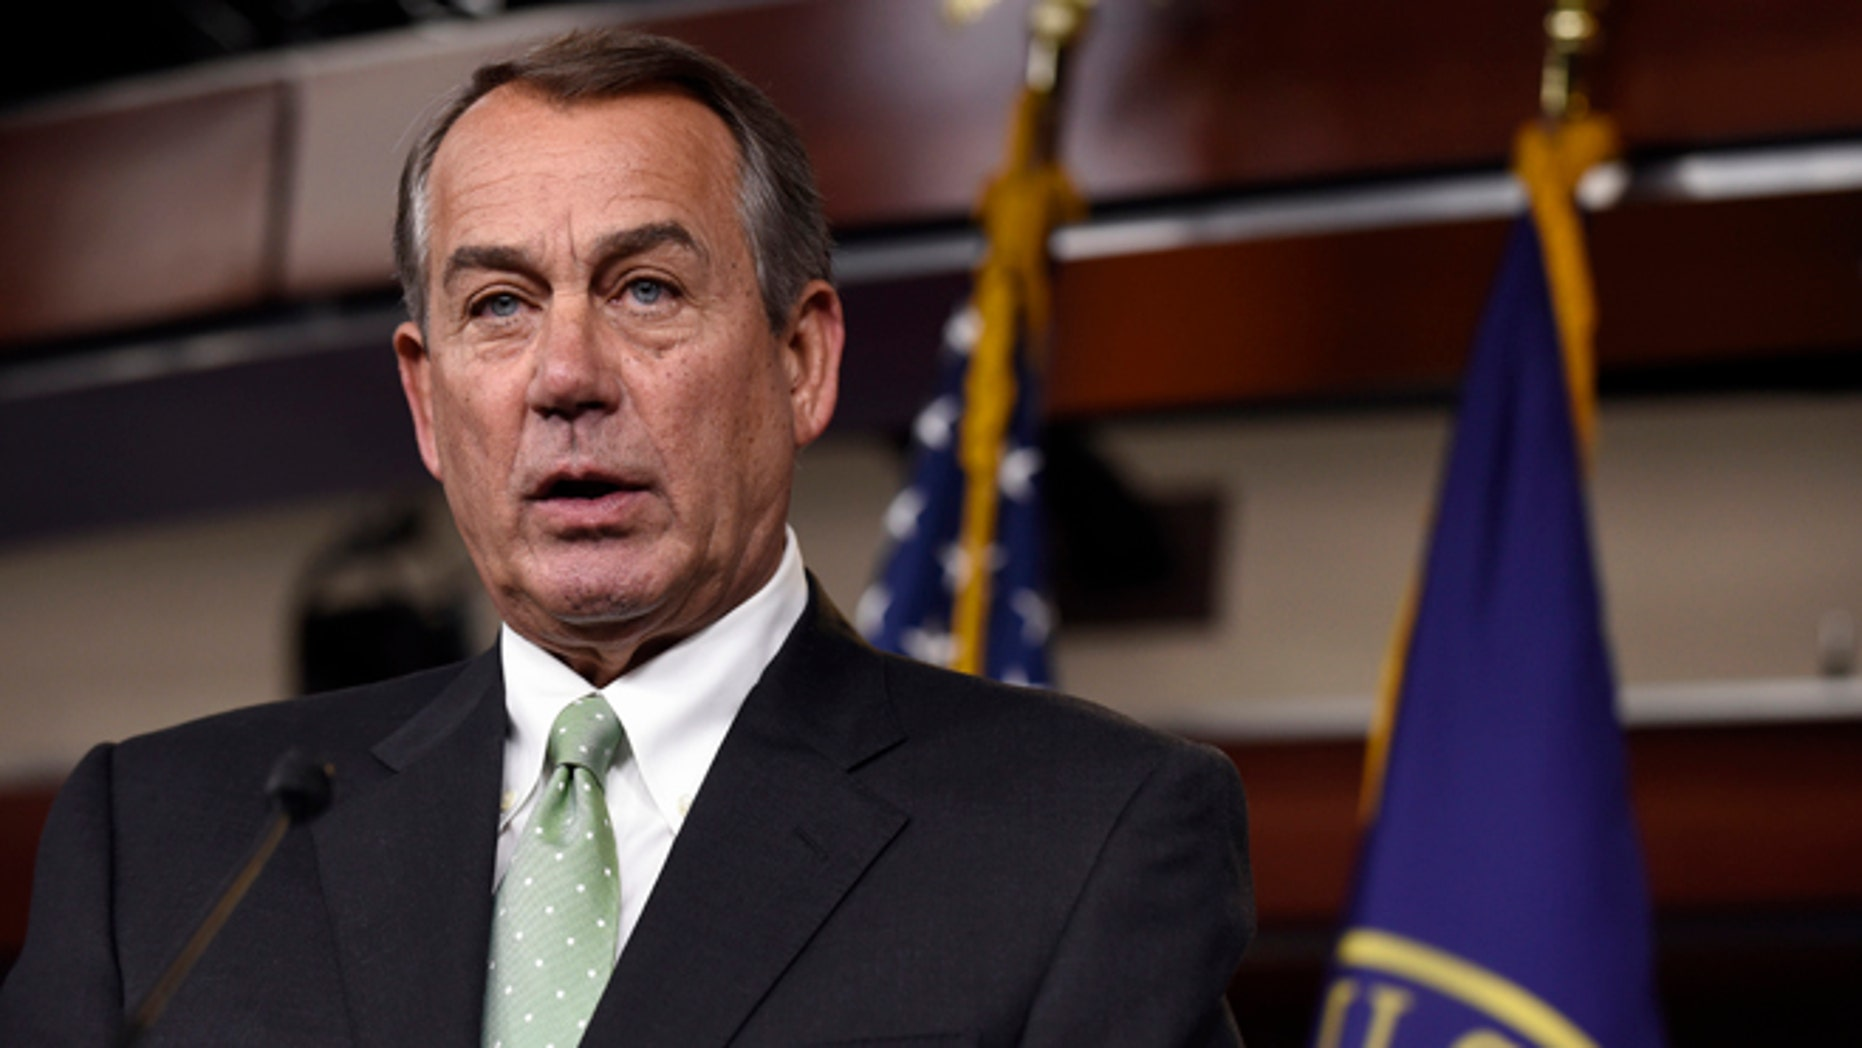 May 21, 2015: House Speaker John Boehner speaks during a news conference on Capitol Hill.